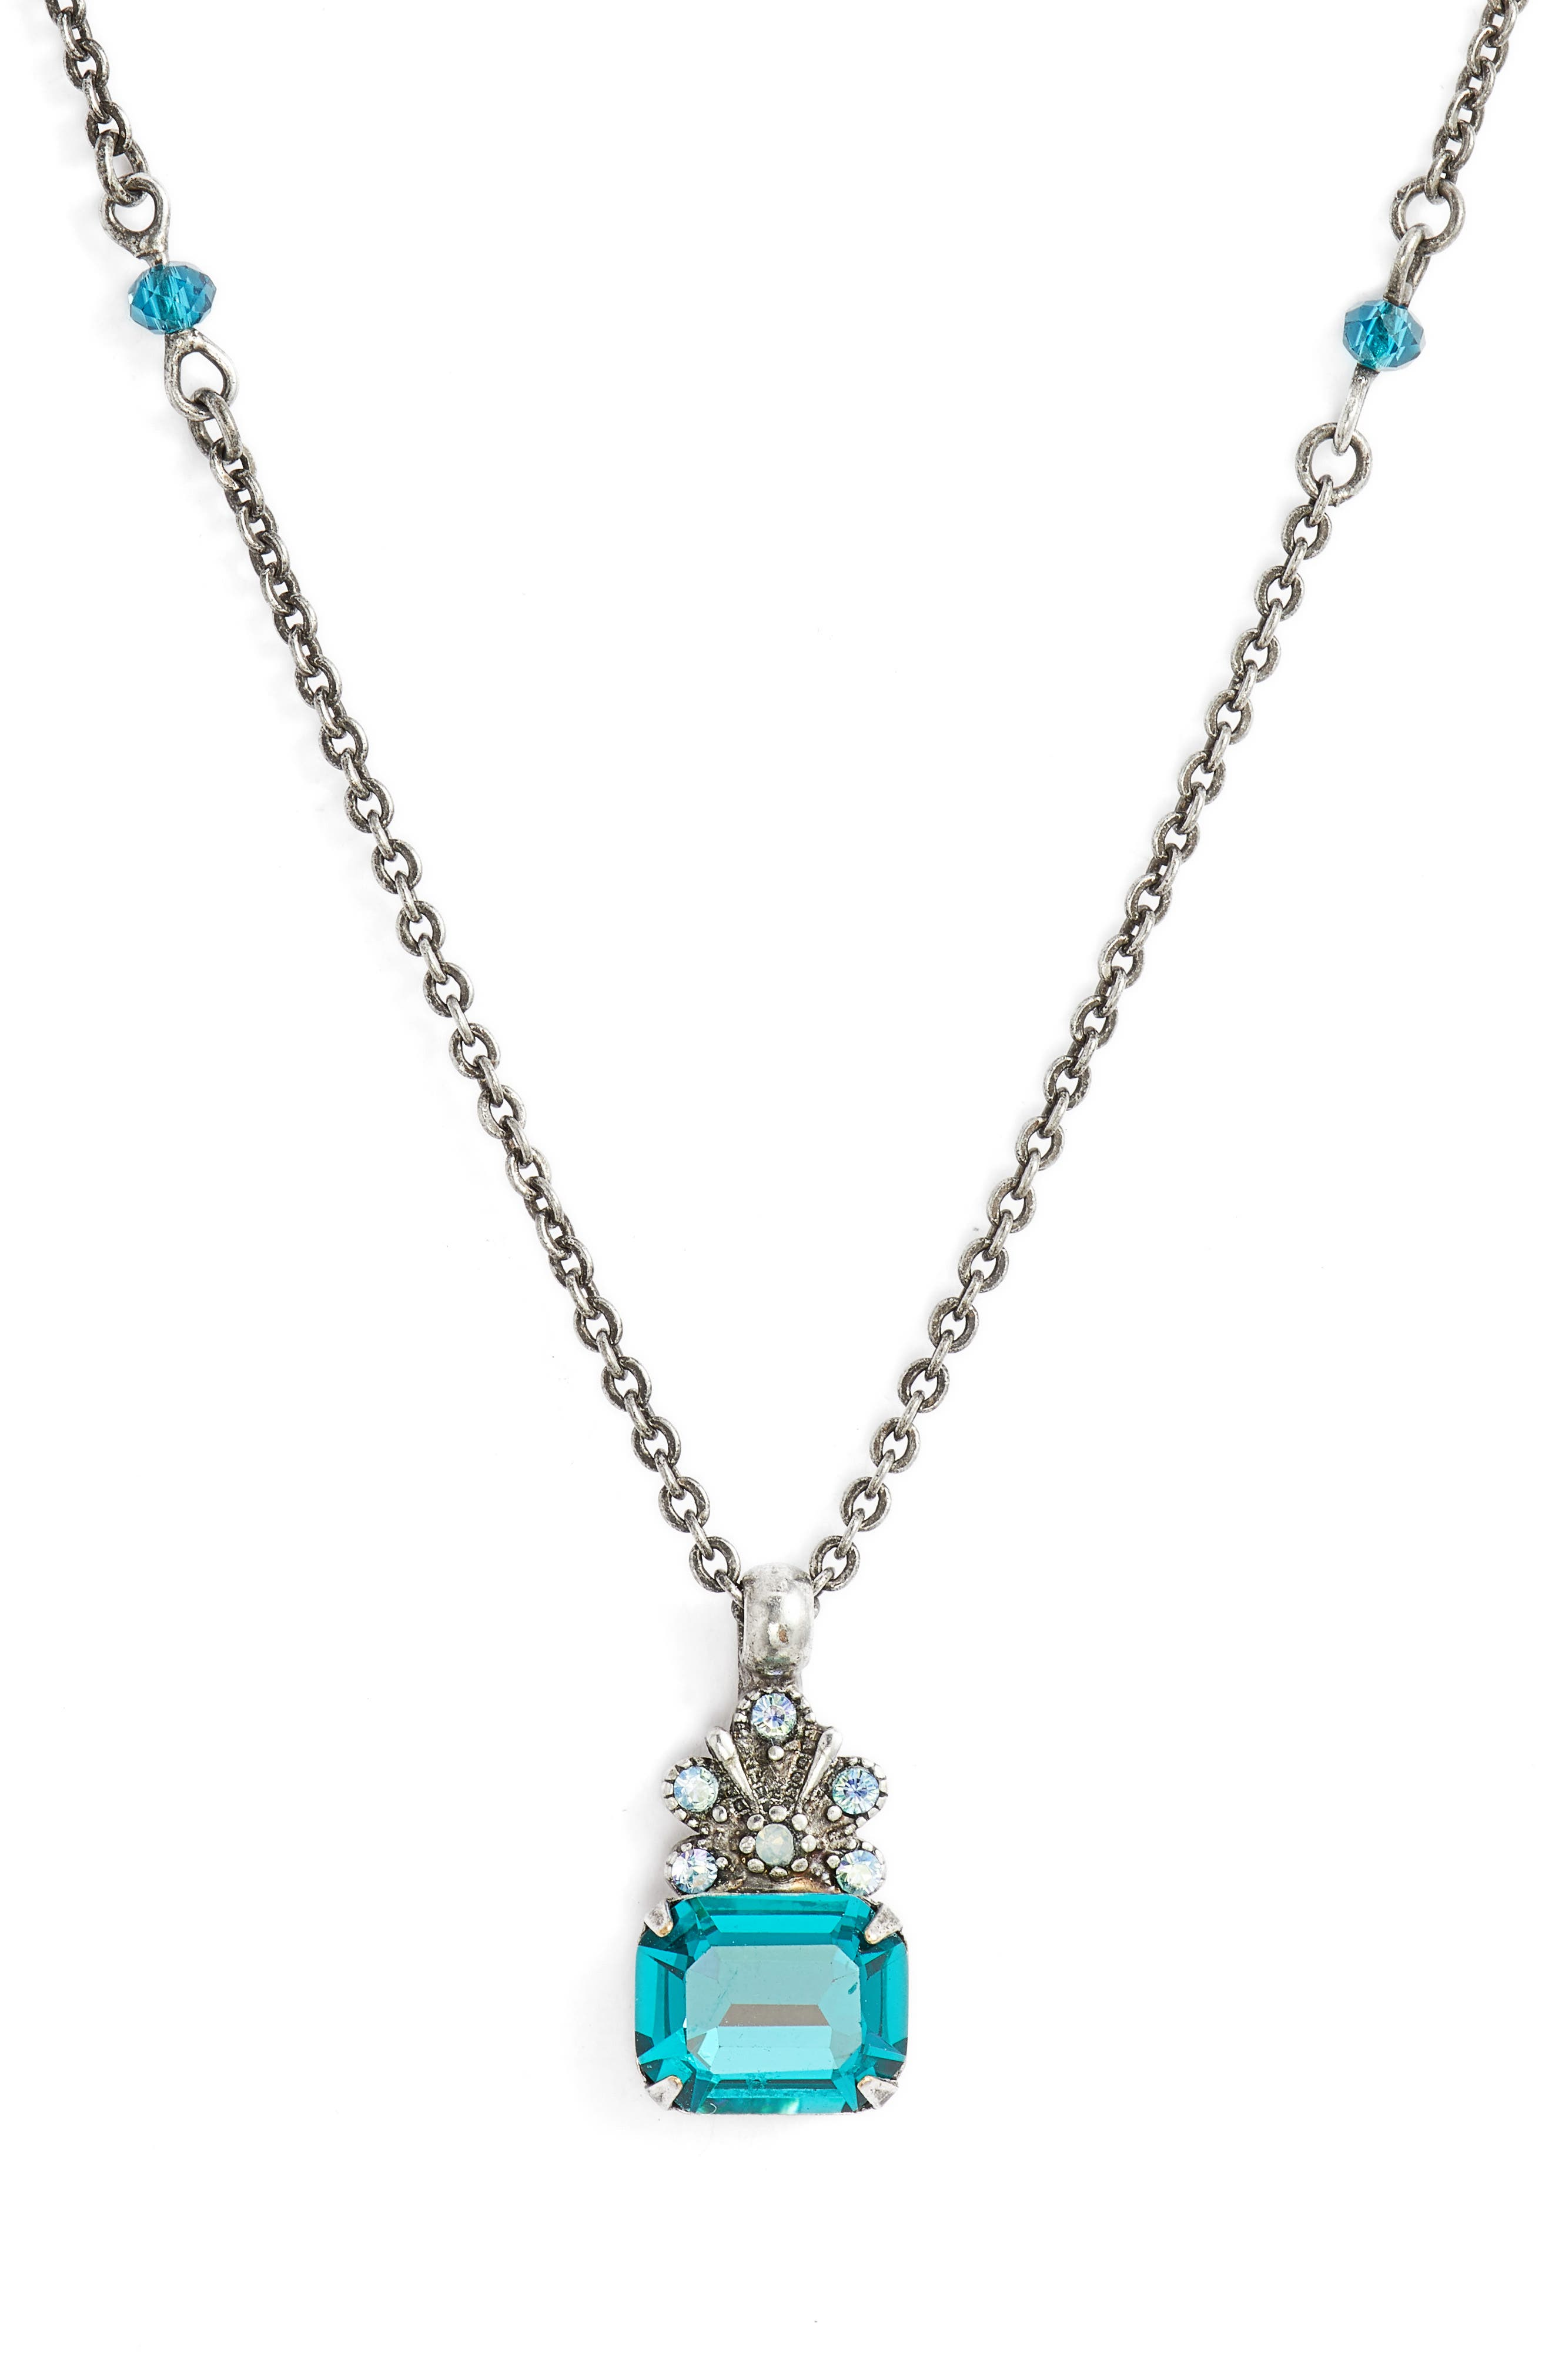 Crowning Glory Crystal Pendant Necklace,                             Main thumbnail 1, color,                             BLUE-GREEN